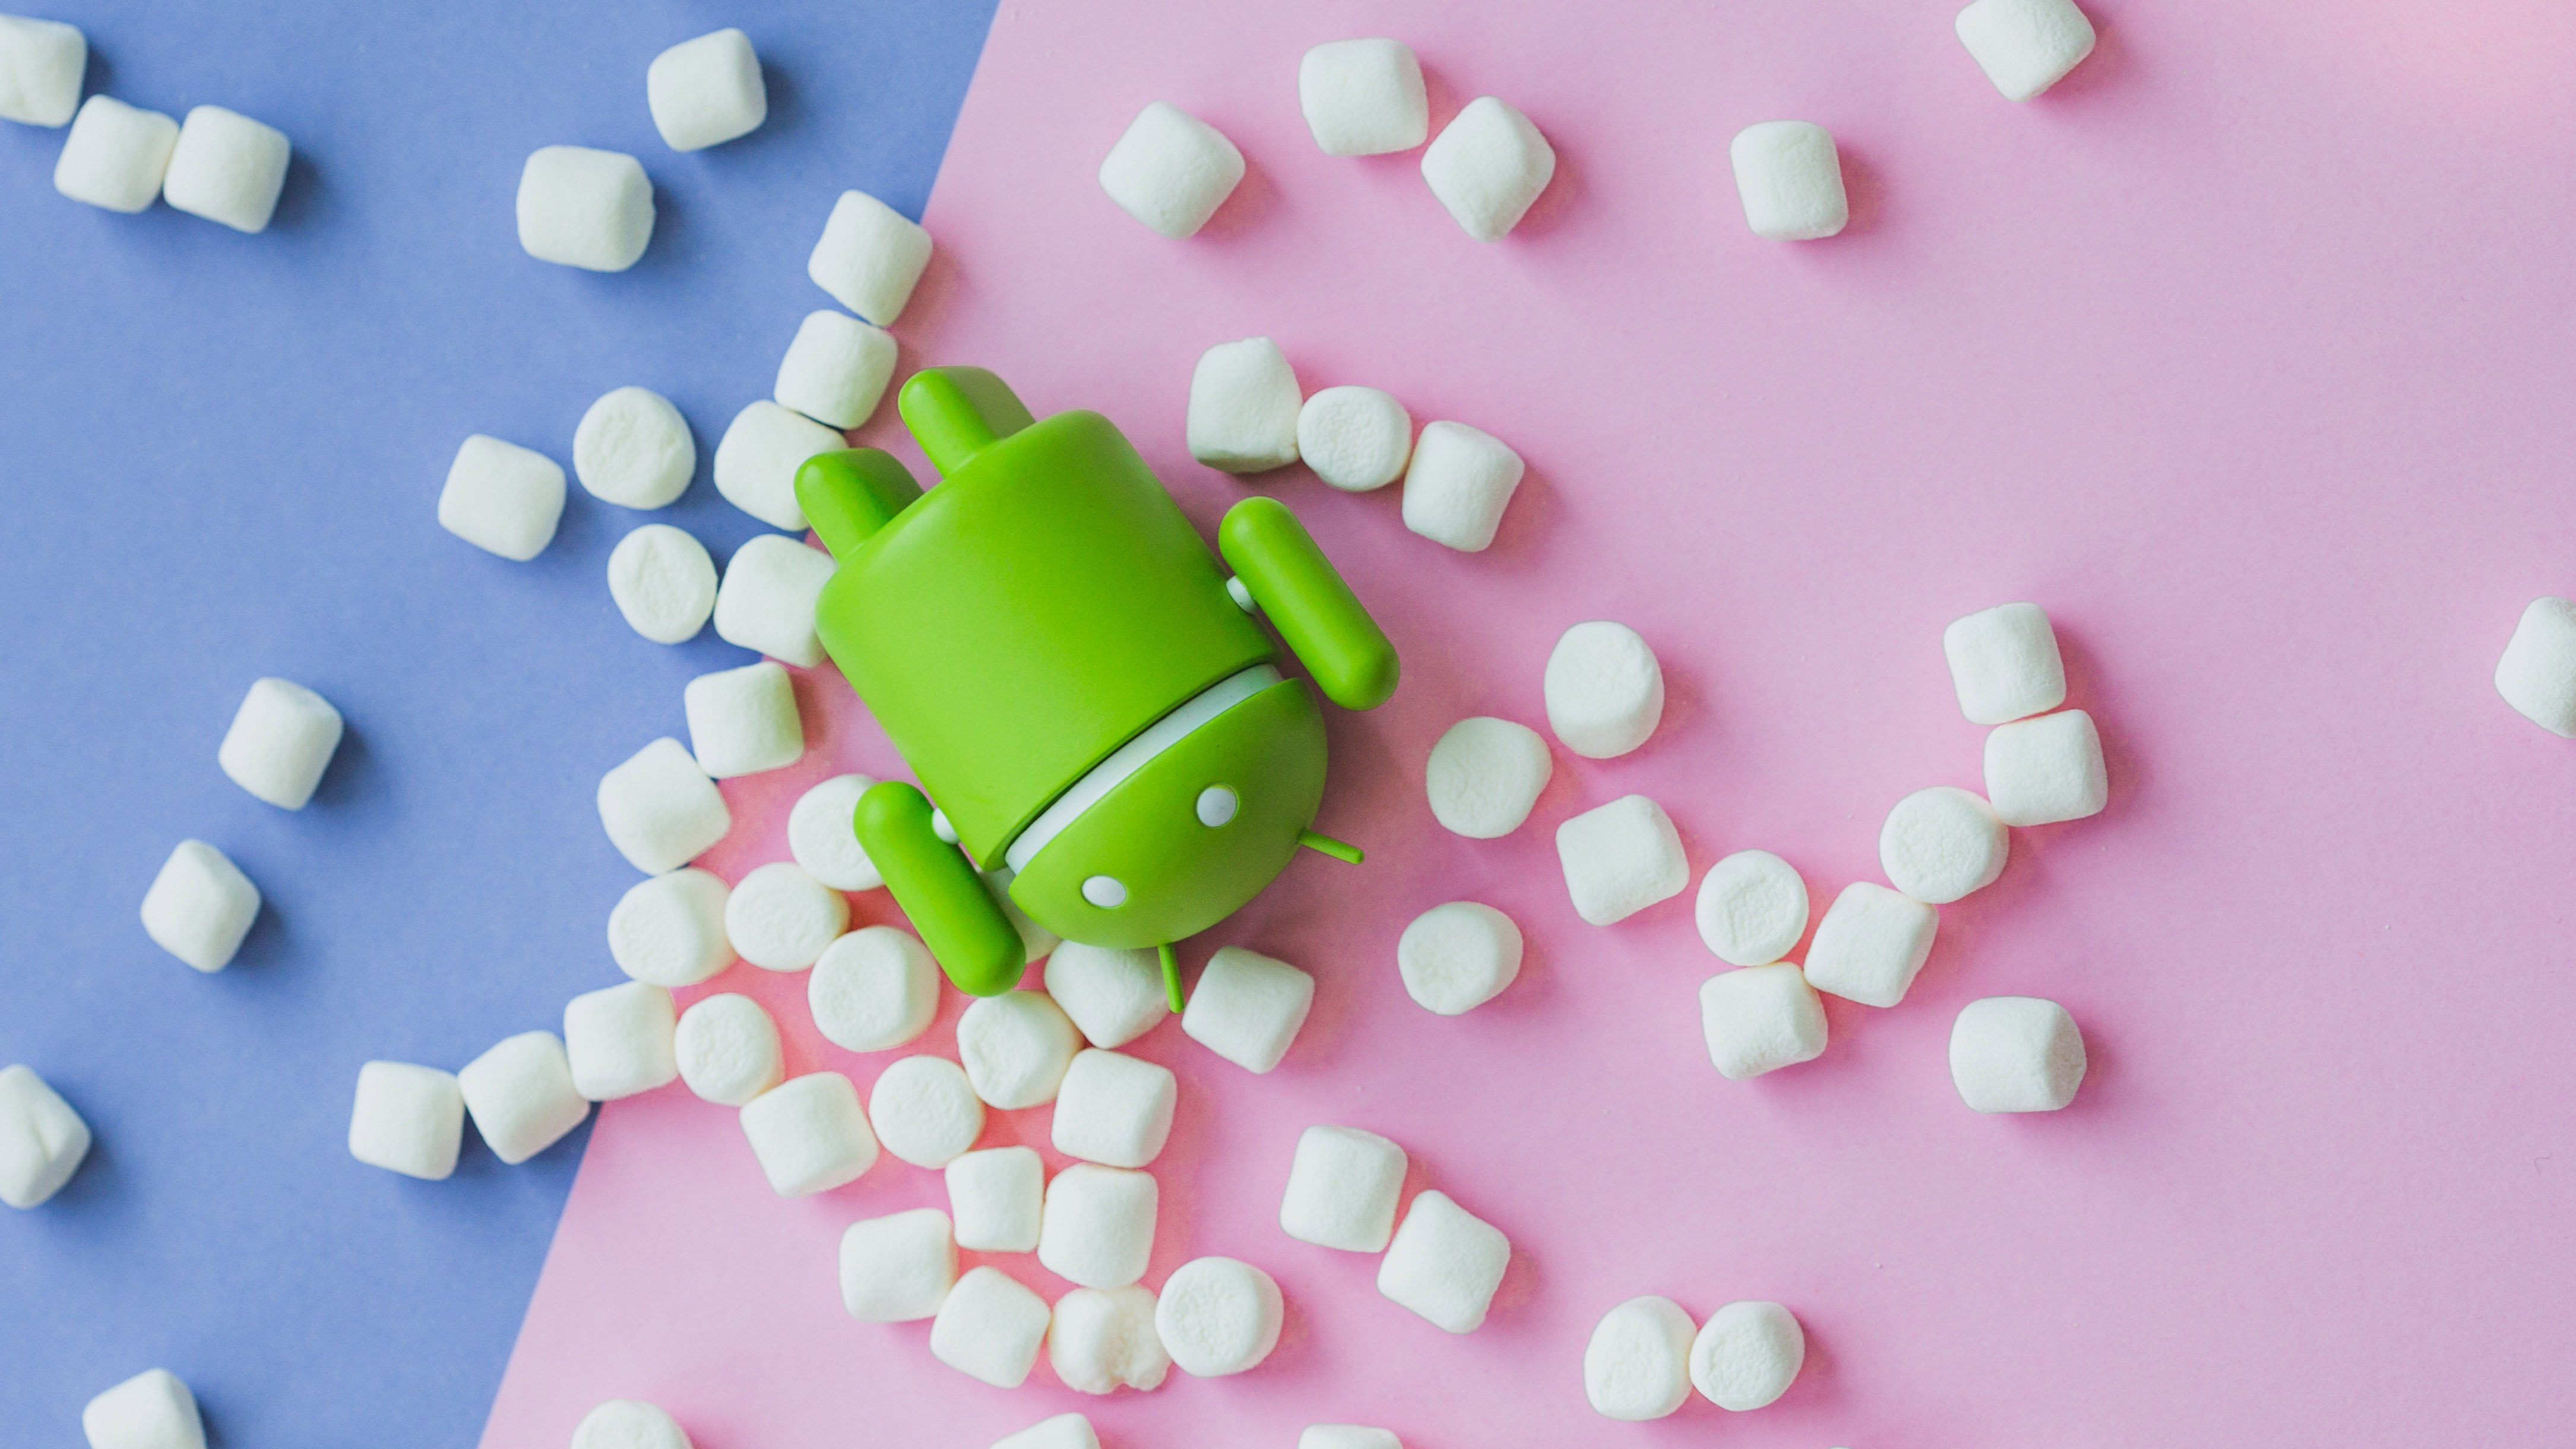 Android 6 Marshmallow: update overview for smartphones and